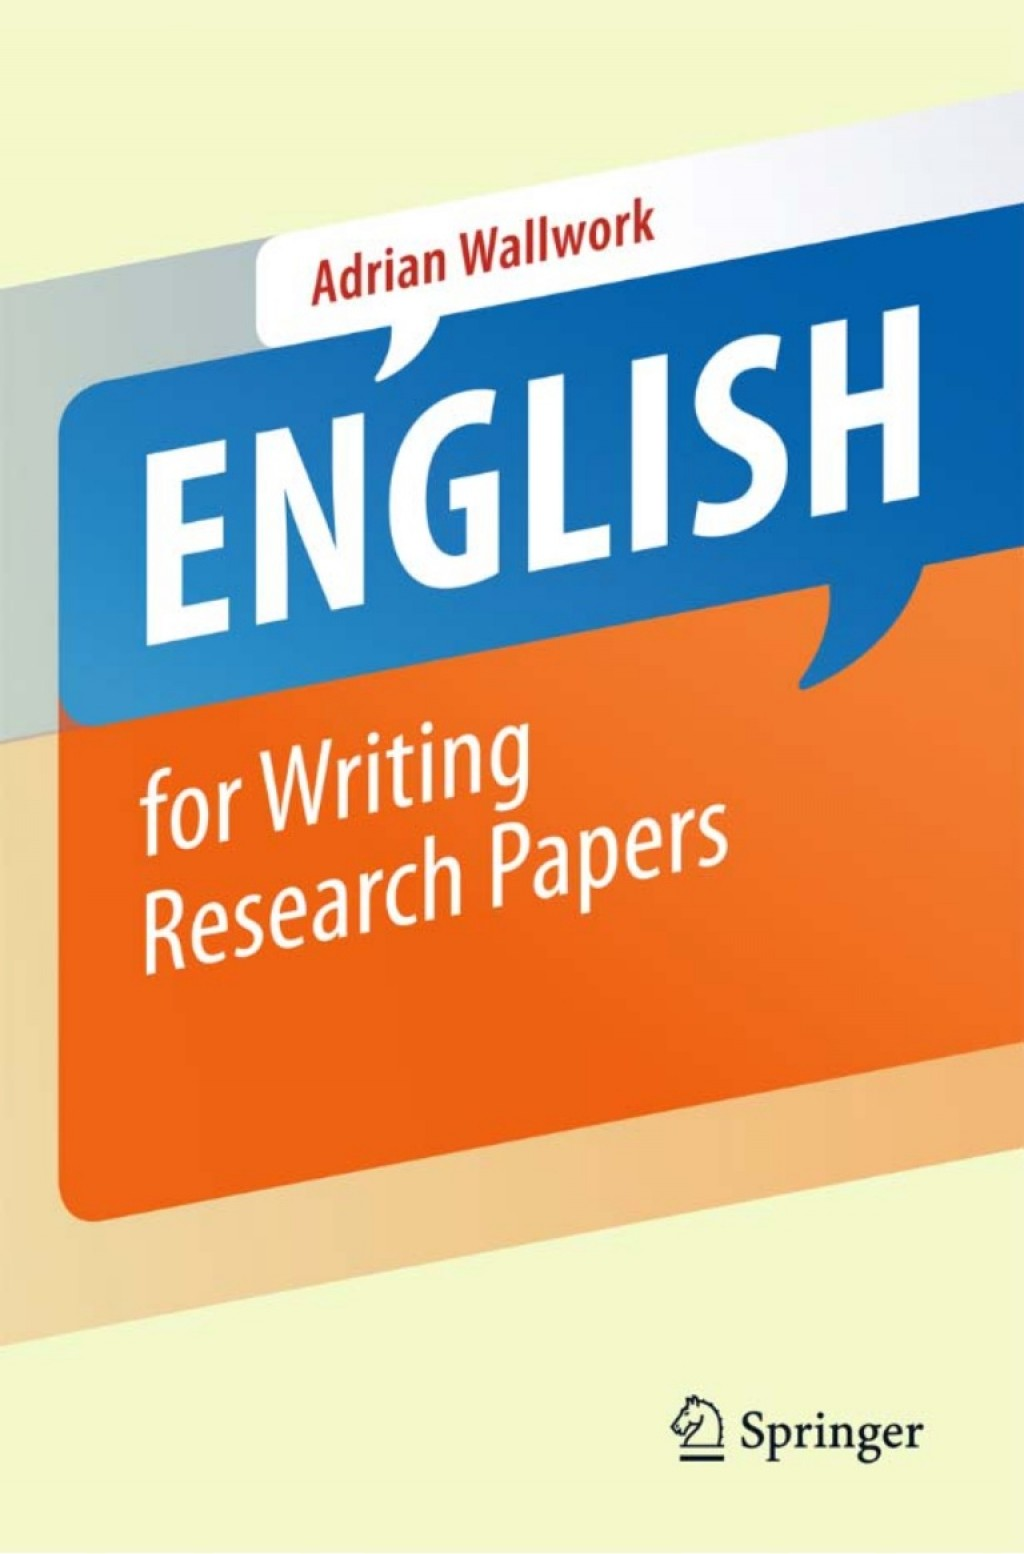 019 Englishforwritingresearchpapers Conversion Gate01 Thumbnail Writing Research Striking Paper Papers A Complete Guide 16th Edition Pdf 15th Large